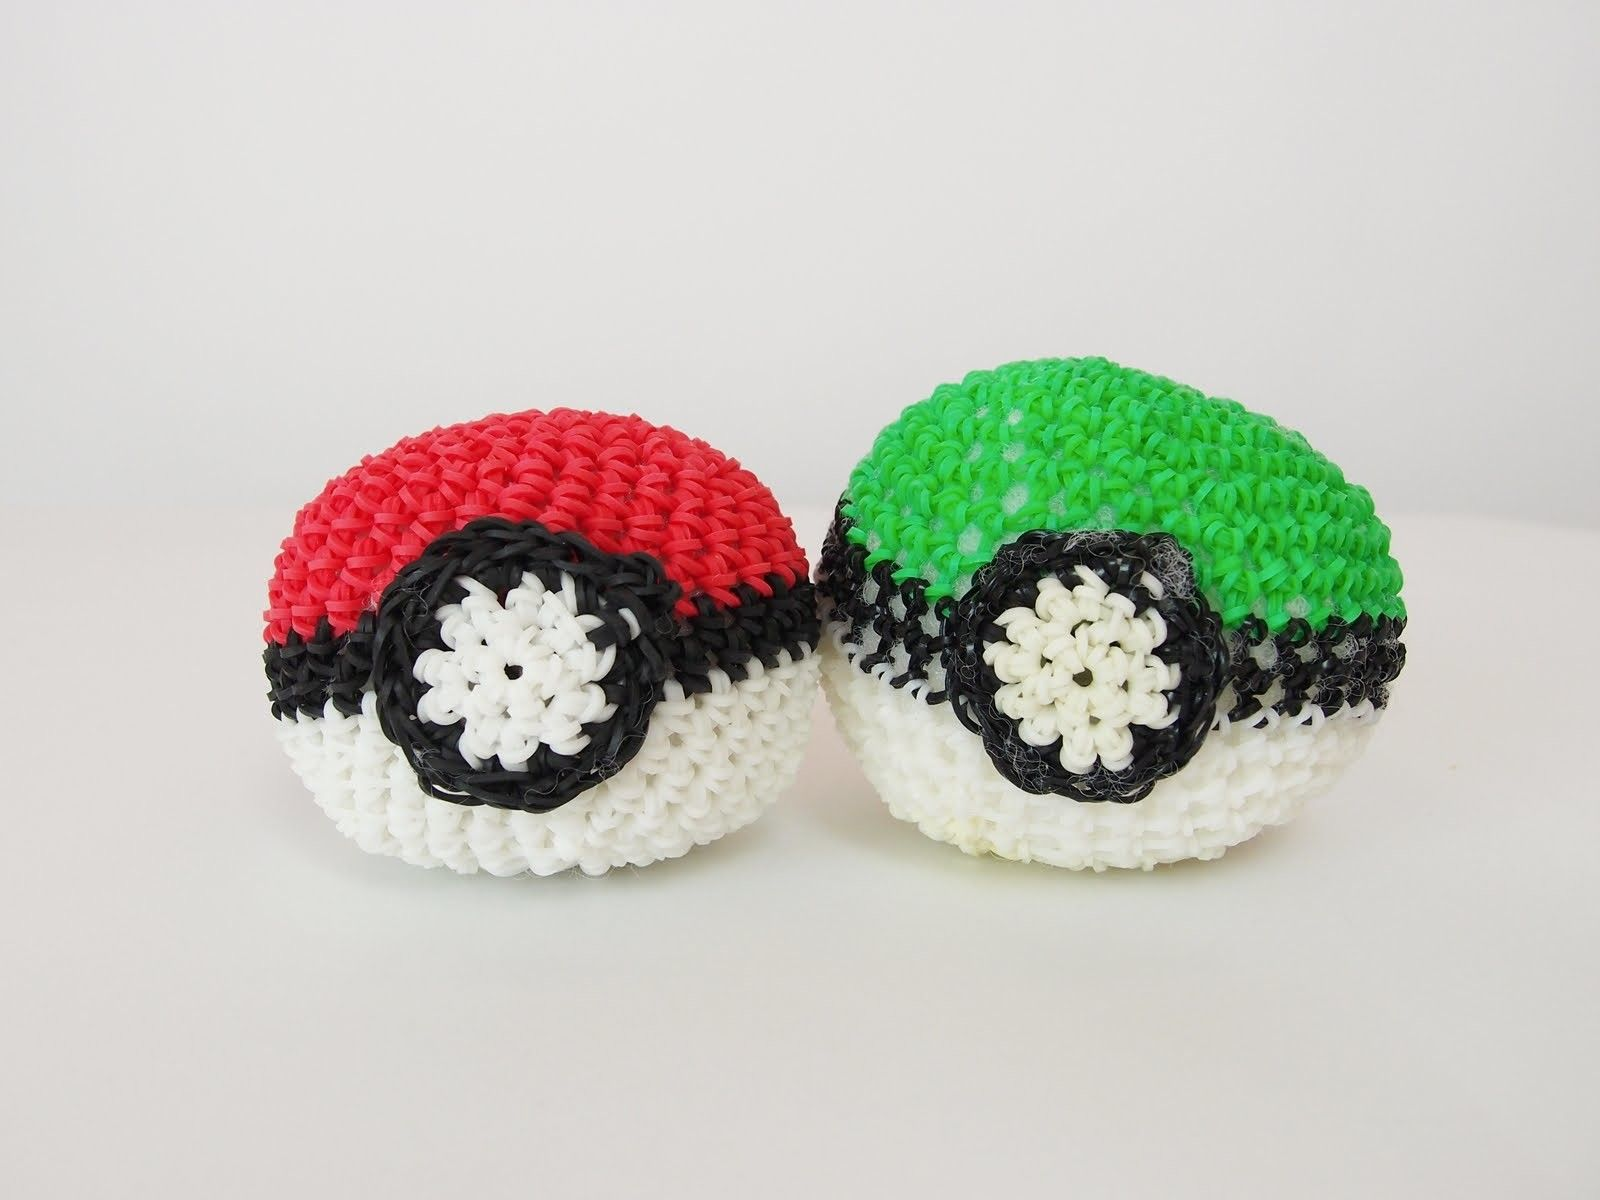 Amigurumi Loom Patterns : Pokémon poké ball rainbow loom bands amigurumi loomigurumi hook only